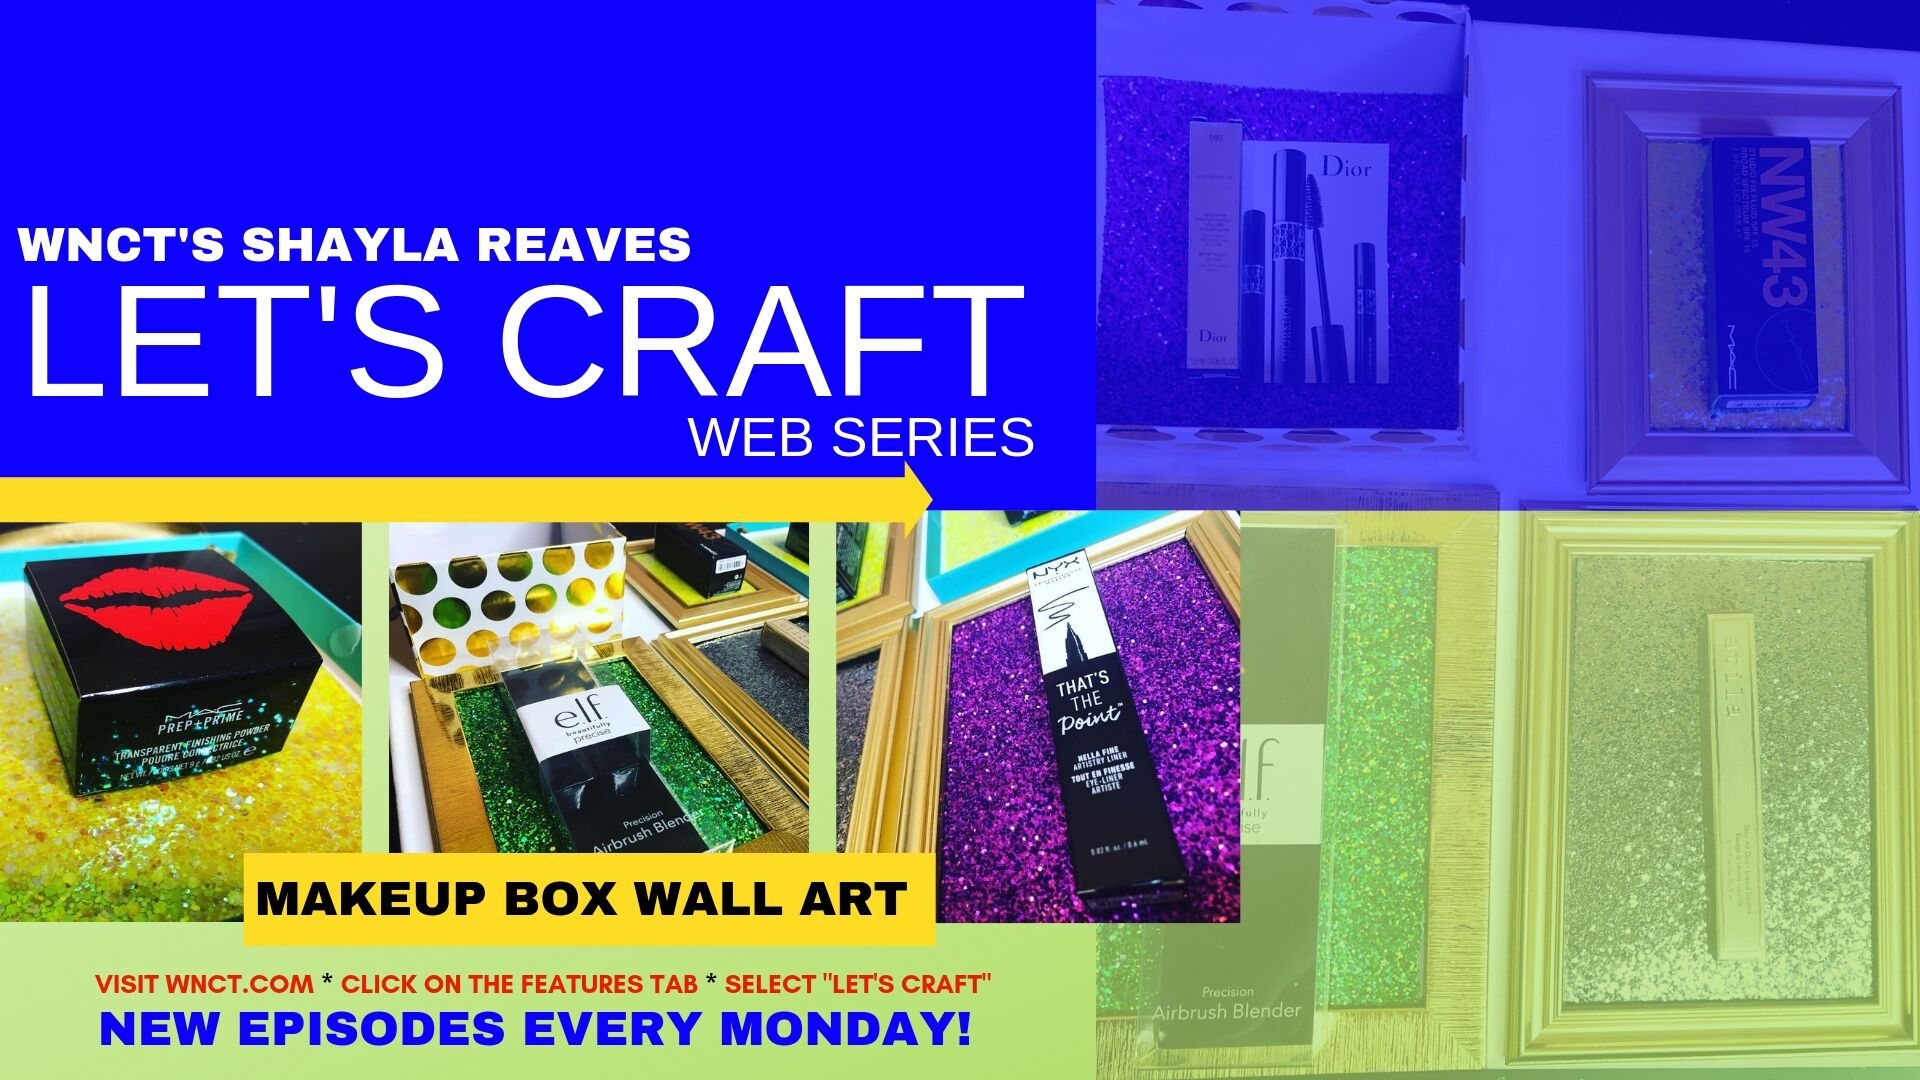 Let's Craft: Using Old Boxes To Make Wall Decorations